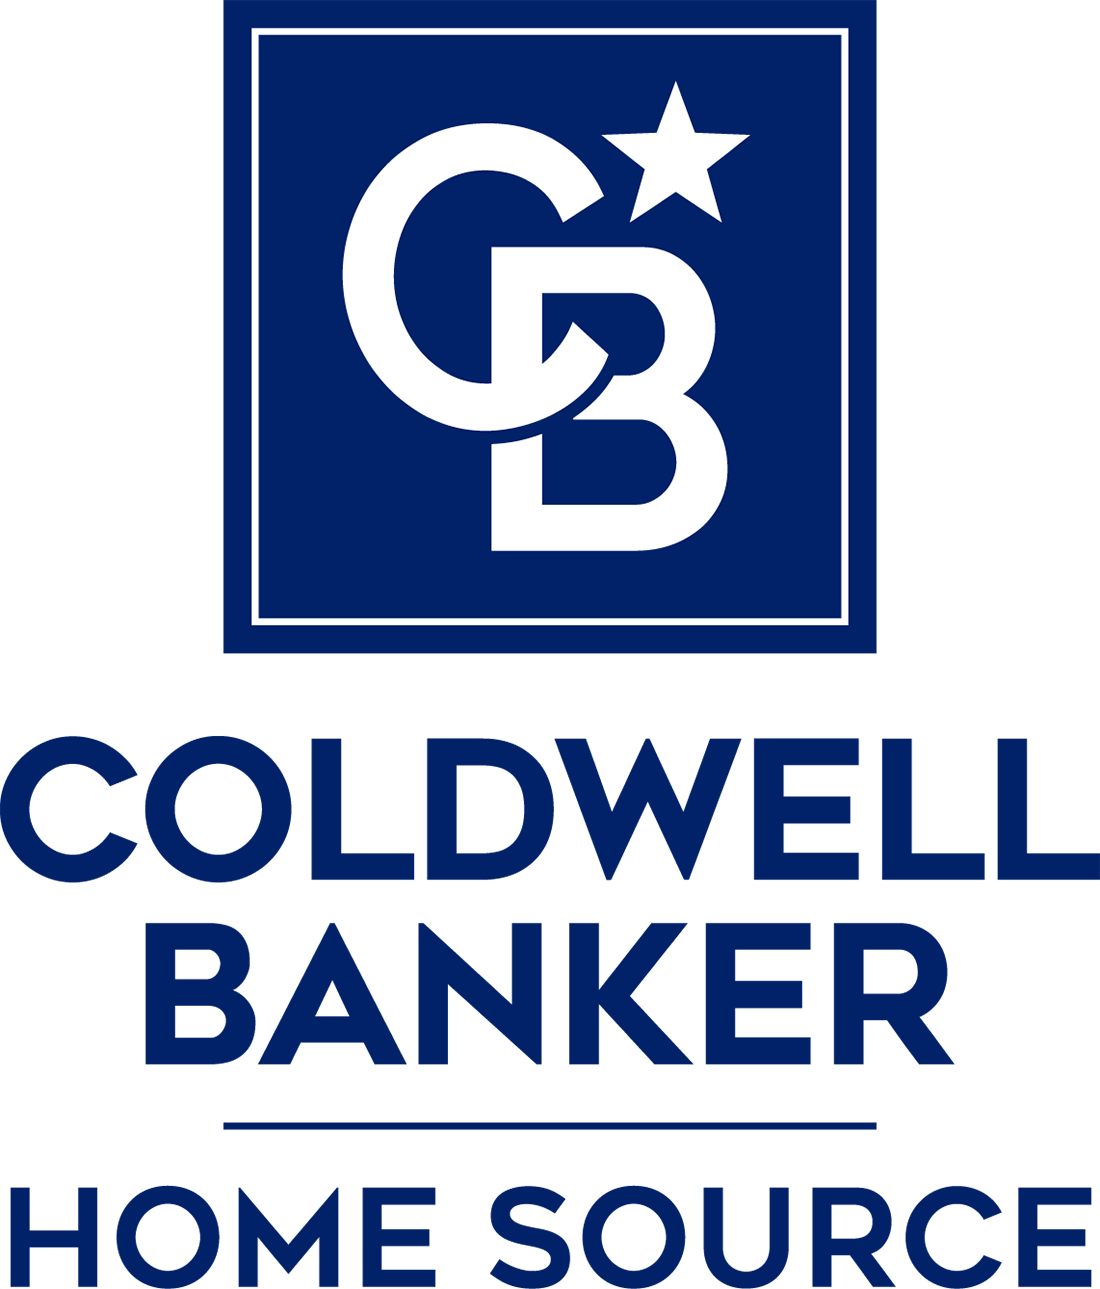 Eric Kessler - Coldwell Banker Home Source Logo